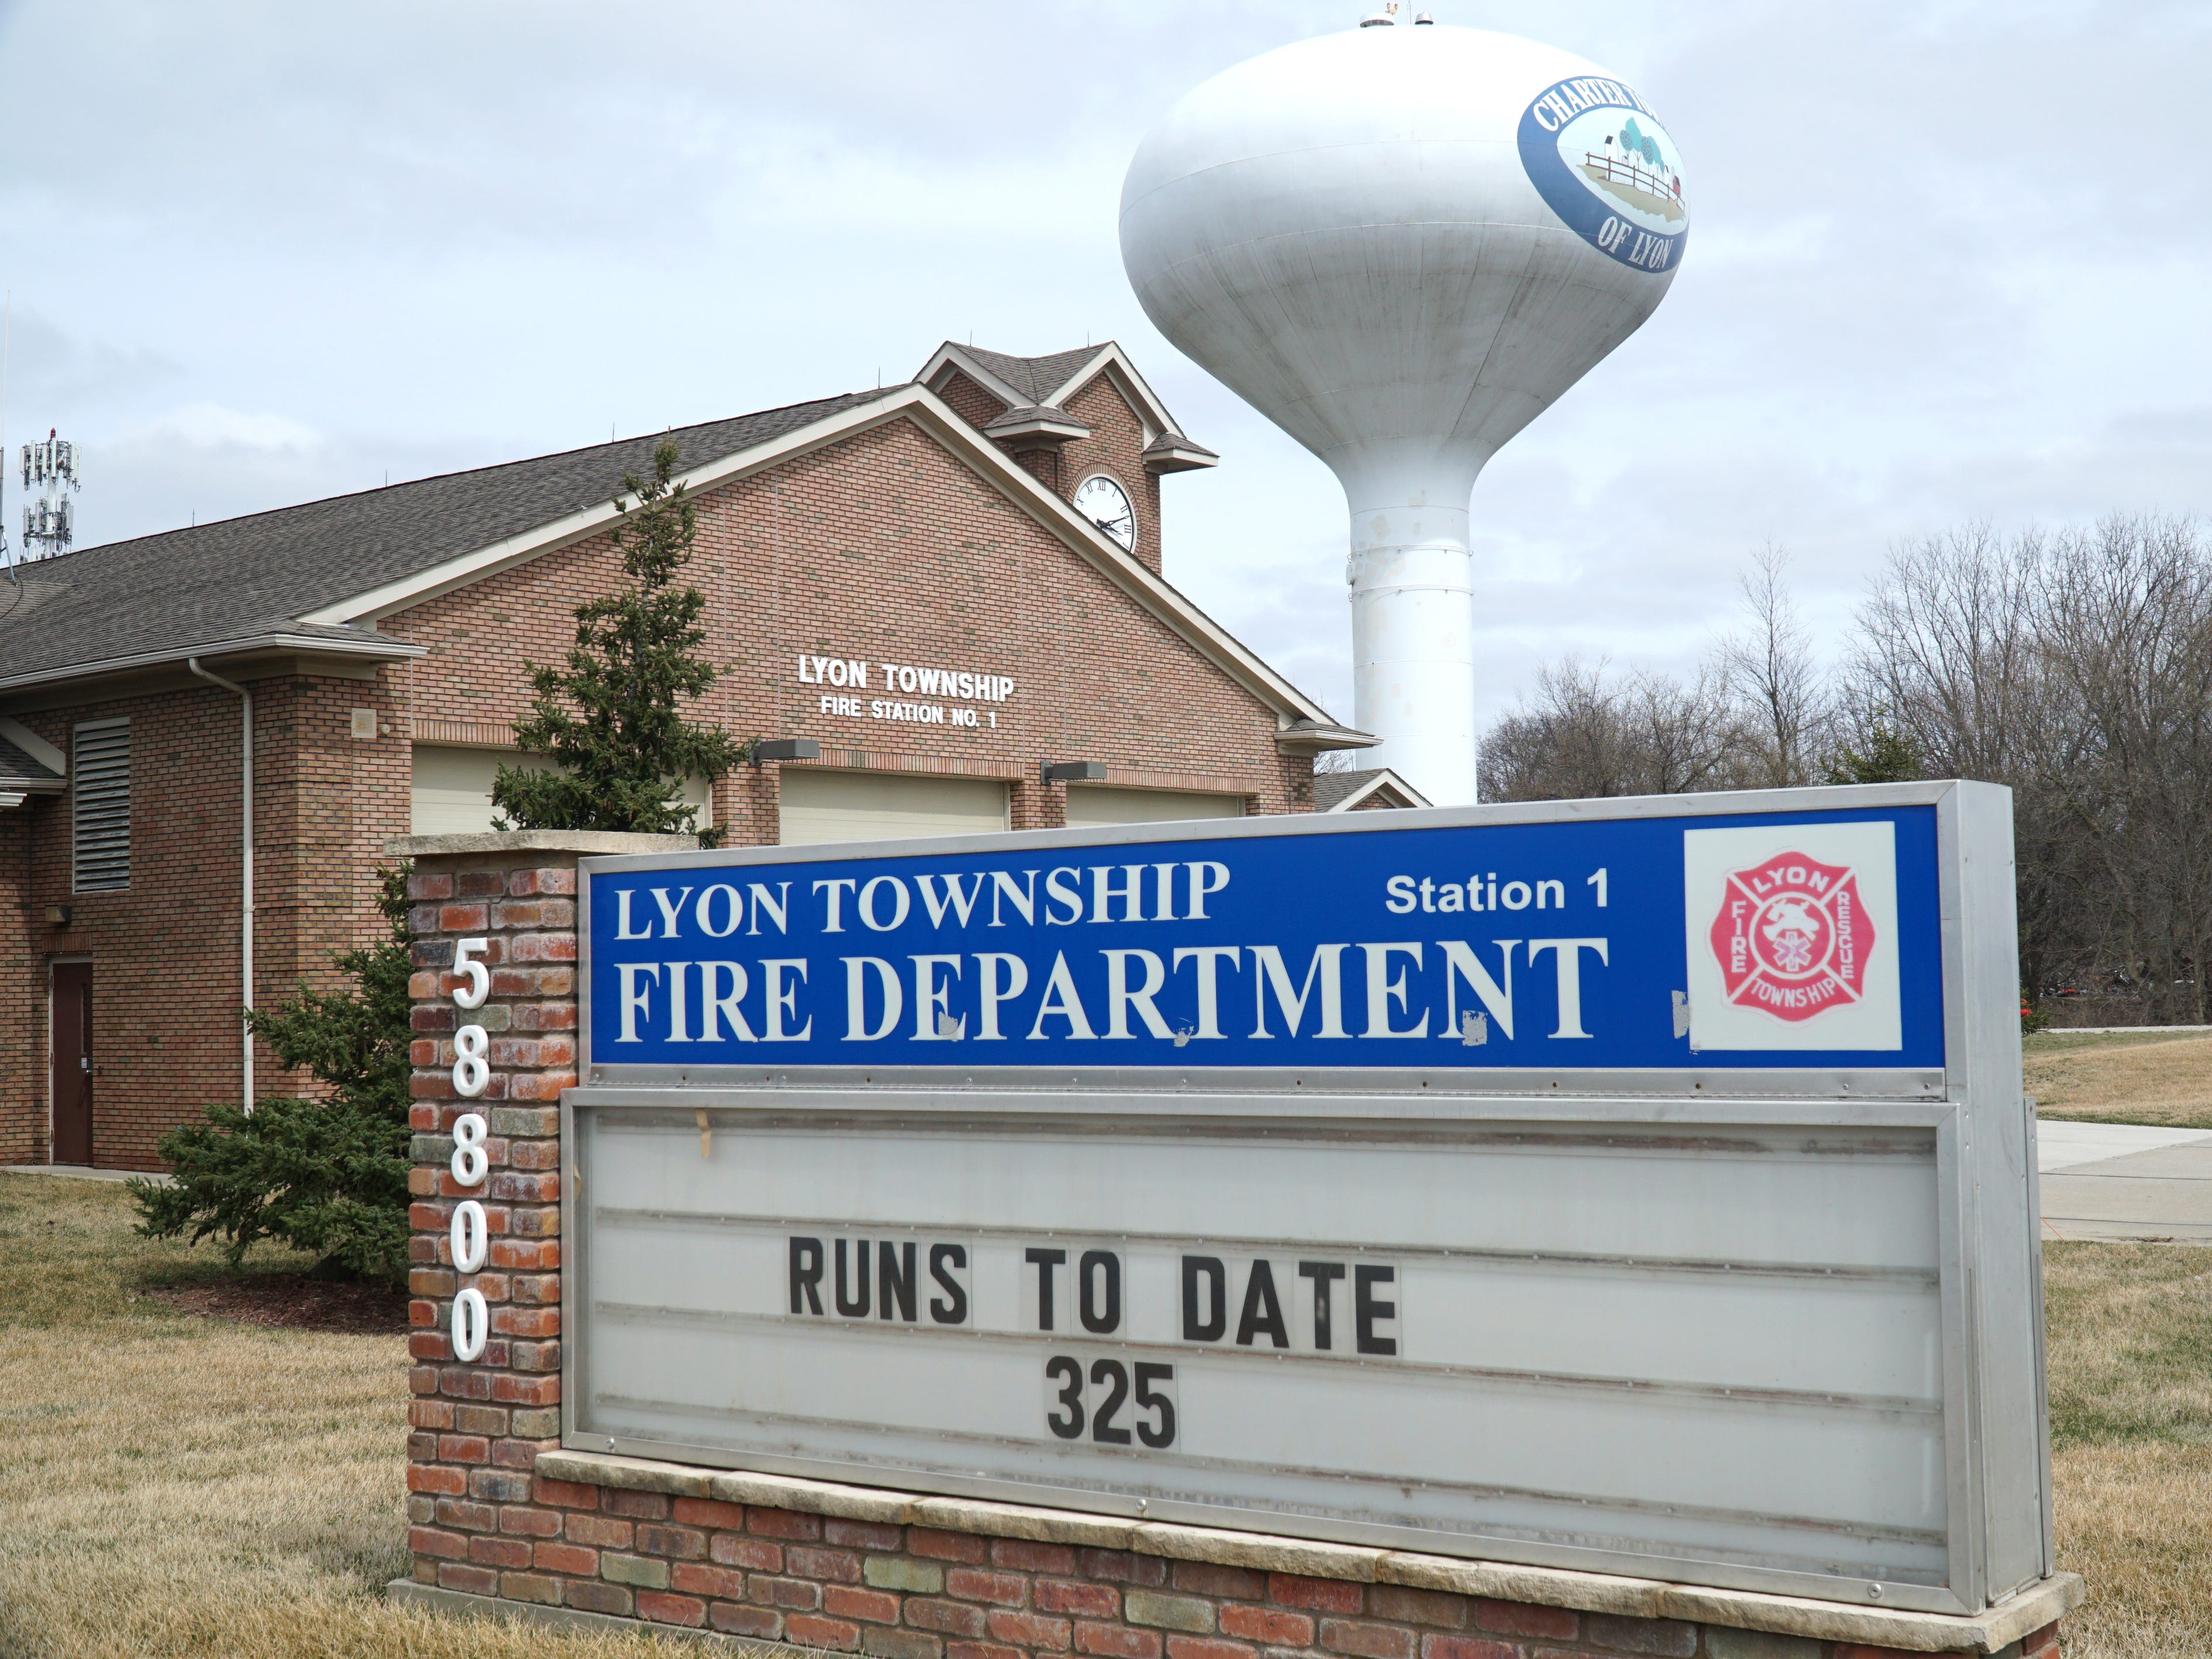 Lyon Township's Fire Station No. 1 on Grand River in New Hudson.